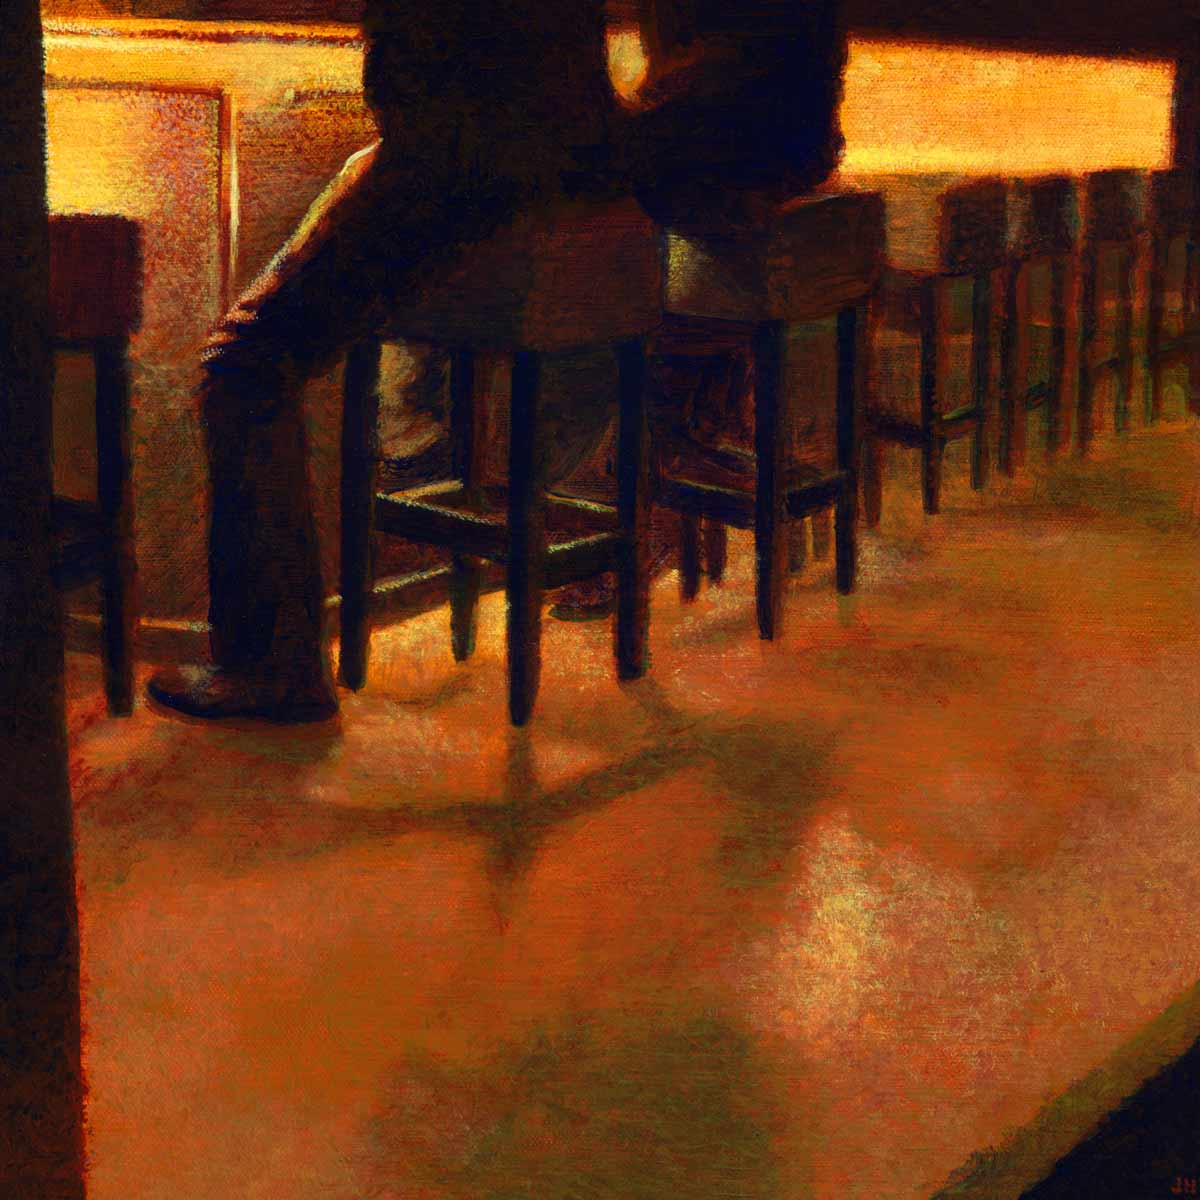 A Seat At the Bar